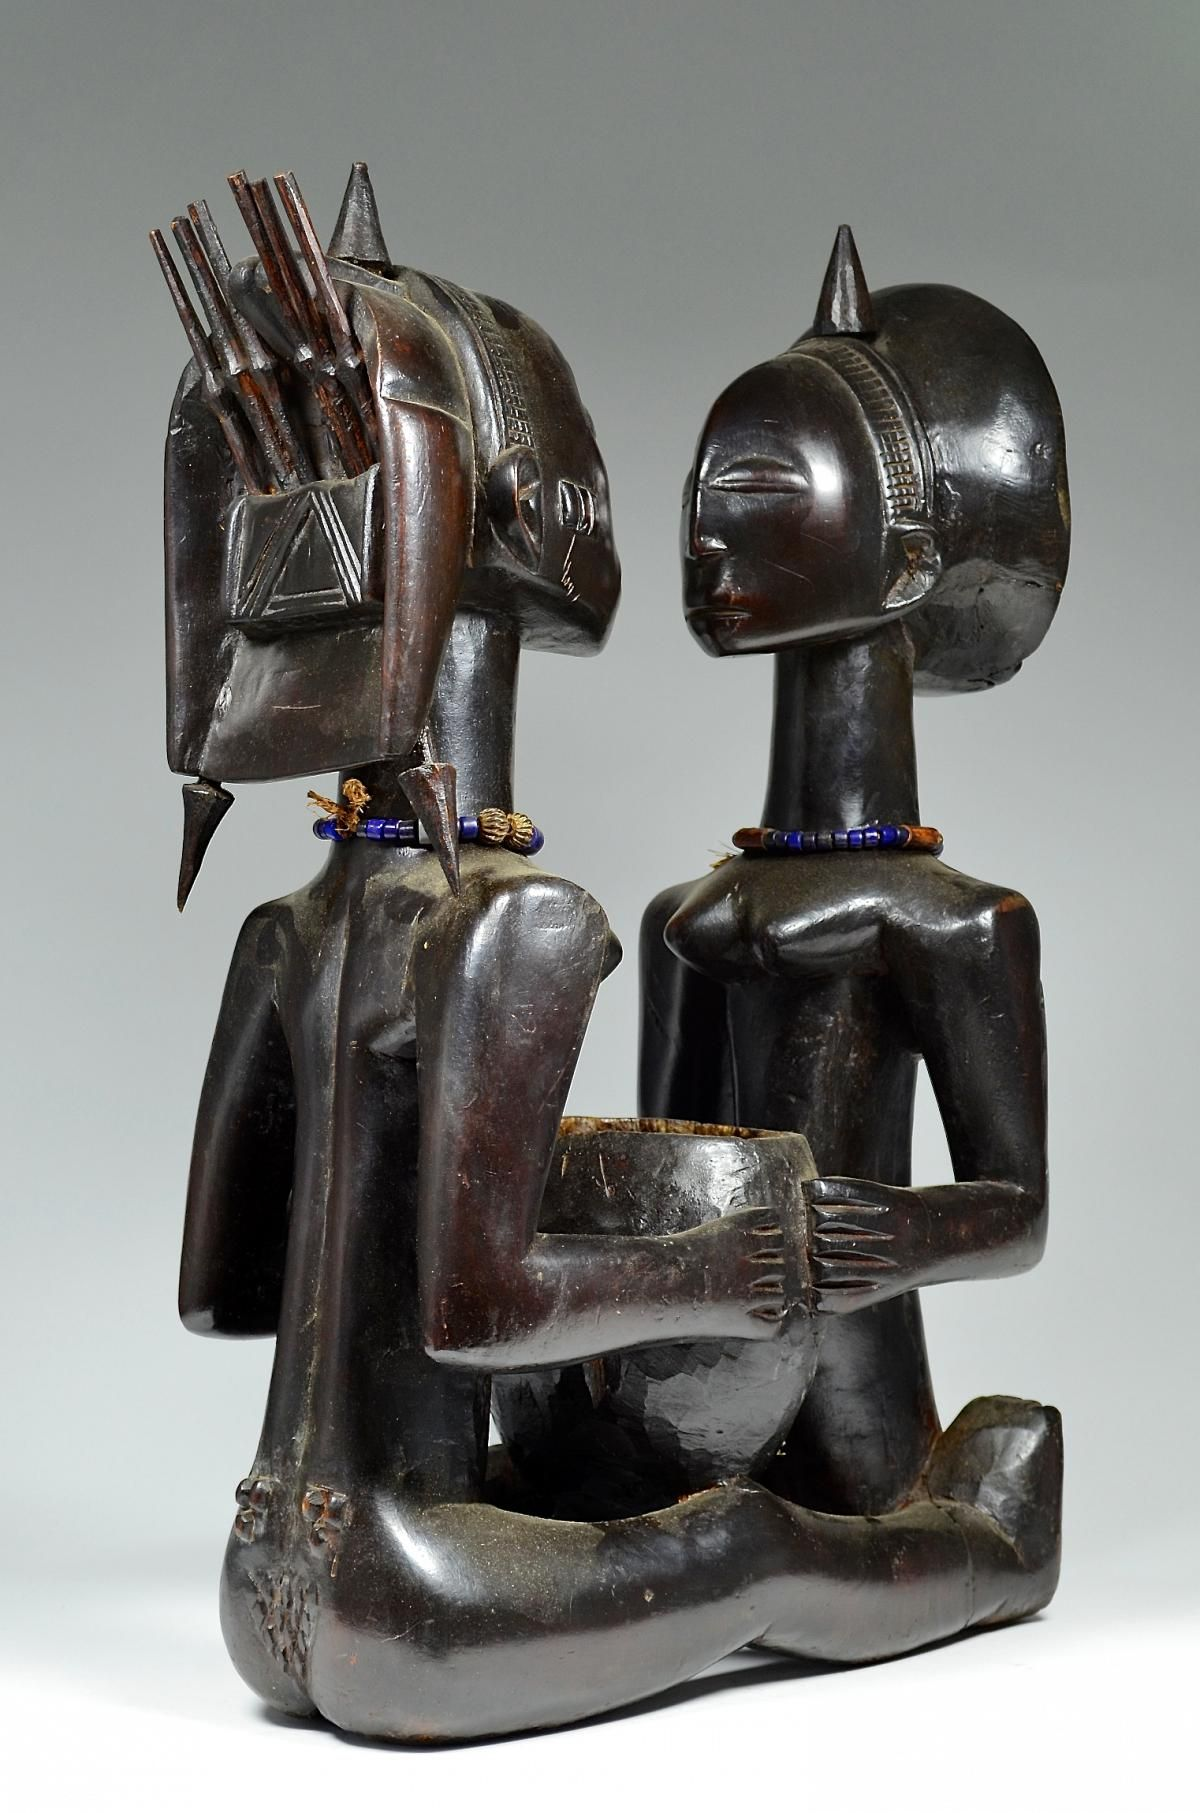 Ethnic group: Luba Country of origin: D.R. Congo Material: Beads, Wood Approximate age: Mid 20th C Dimensions: 61 cm